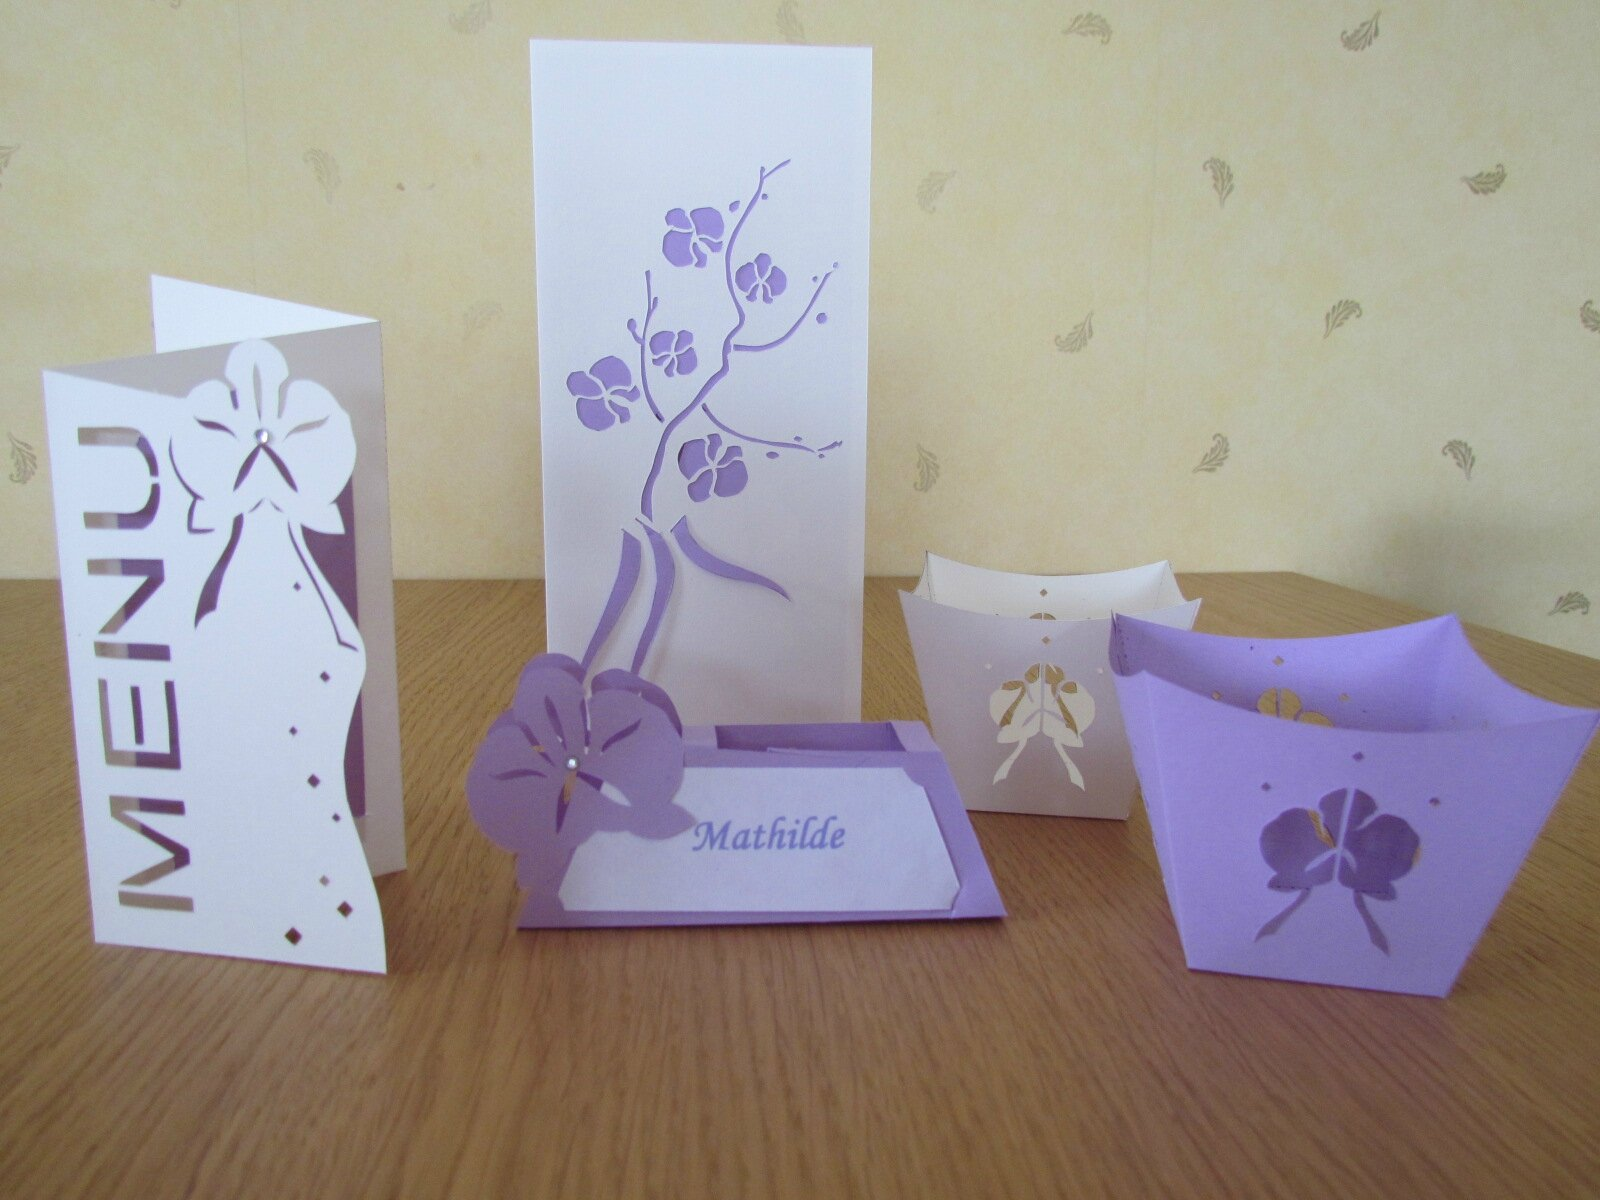 Theme Mariage Orchidee Decoration : Decoration mariage theme orchidée